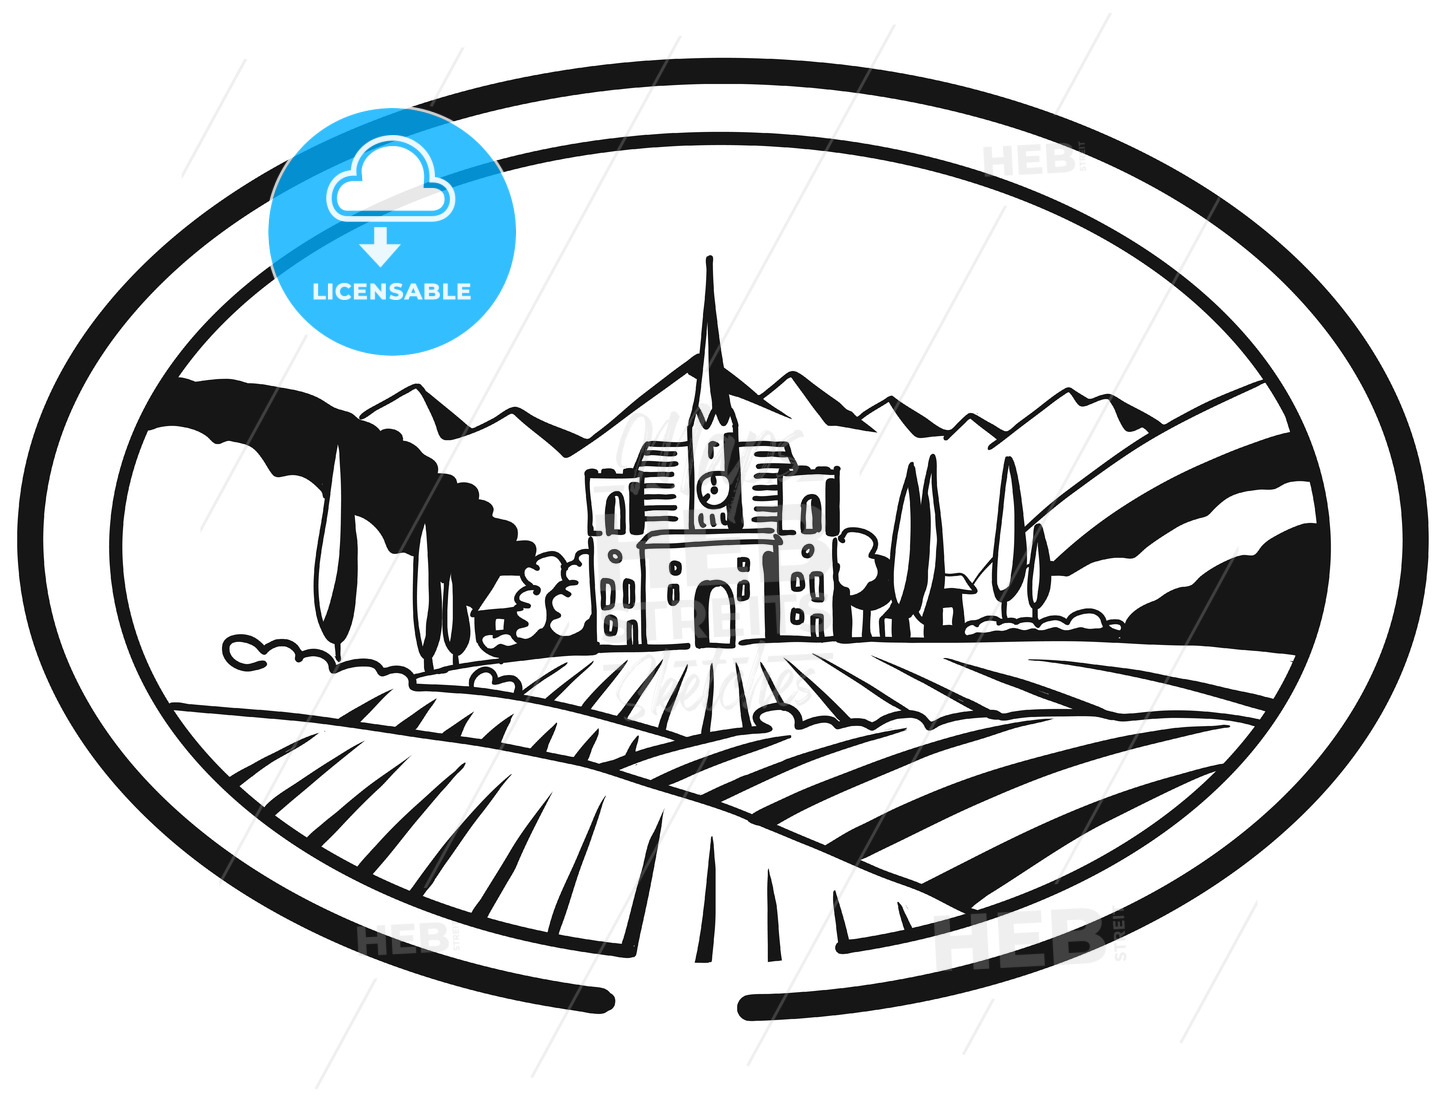 Vineyard Farm Cover Design for Bottle Labeling, Sketched - Hebstreits